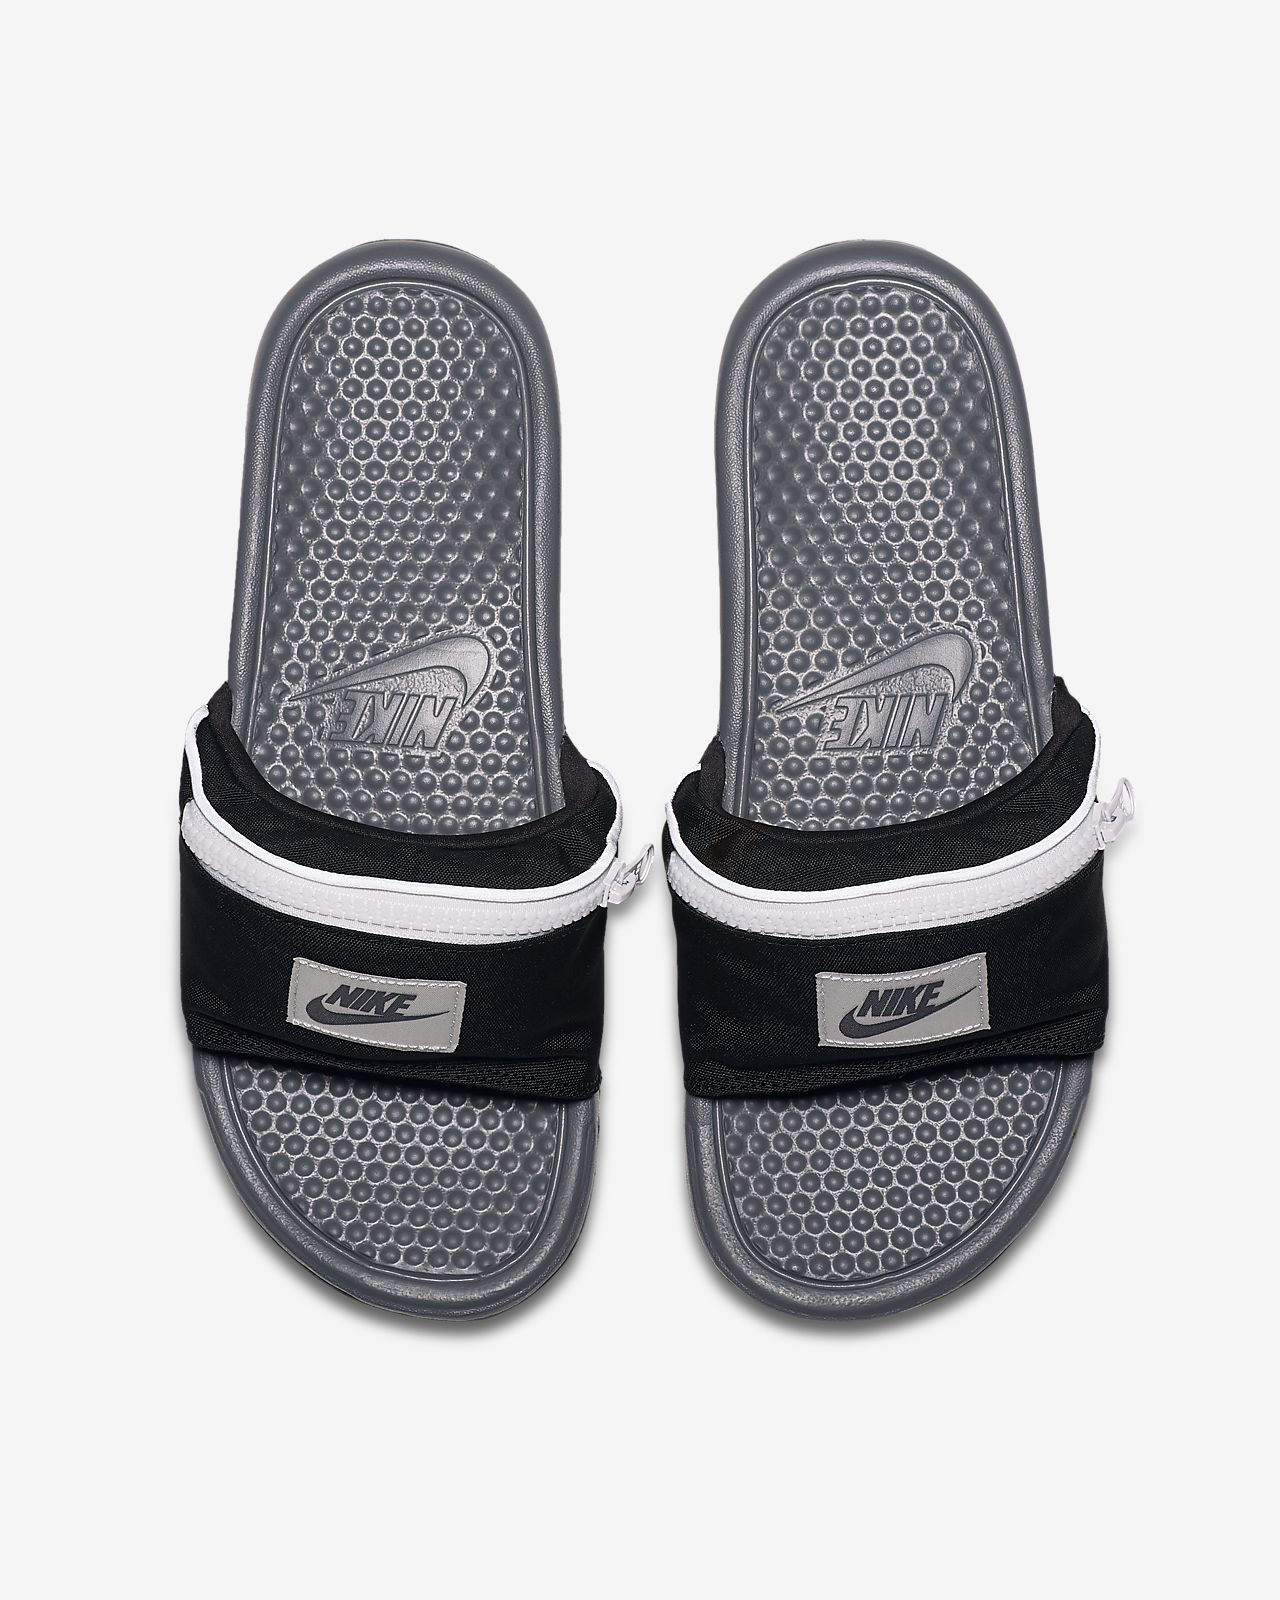 Nike Benassi JDI Bum Bag Men's Slide